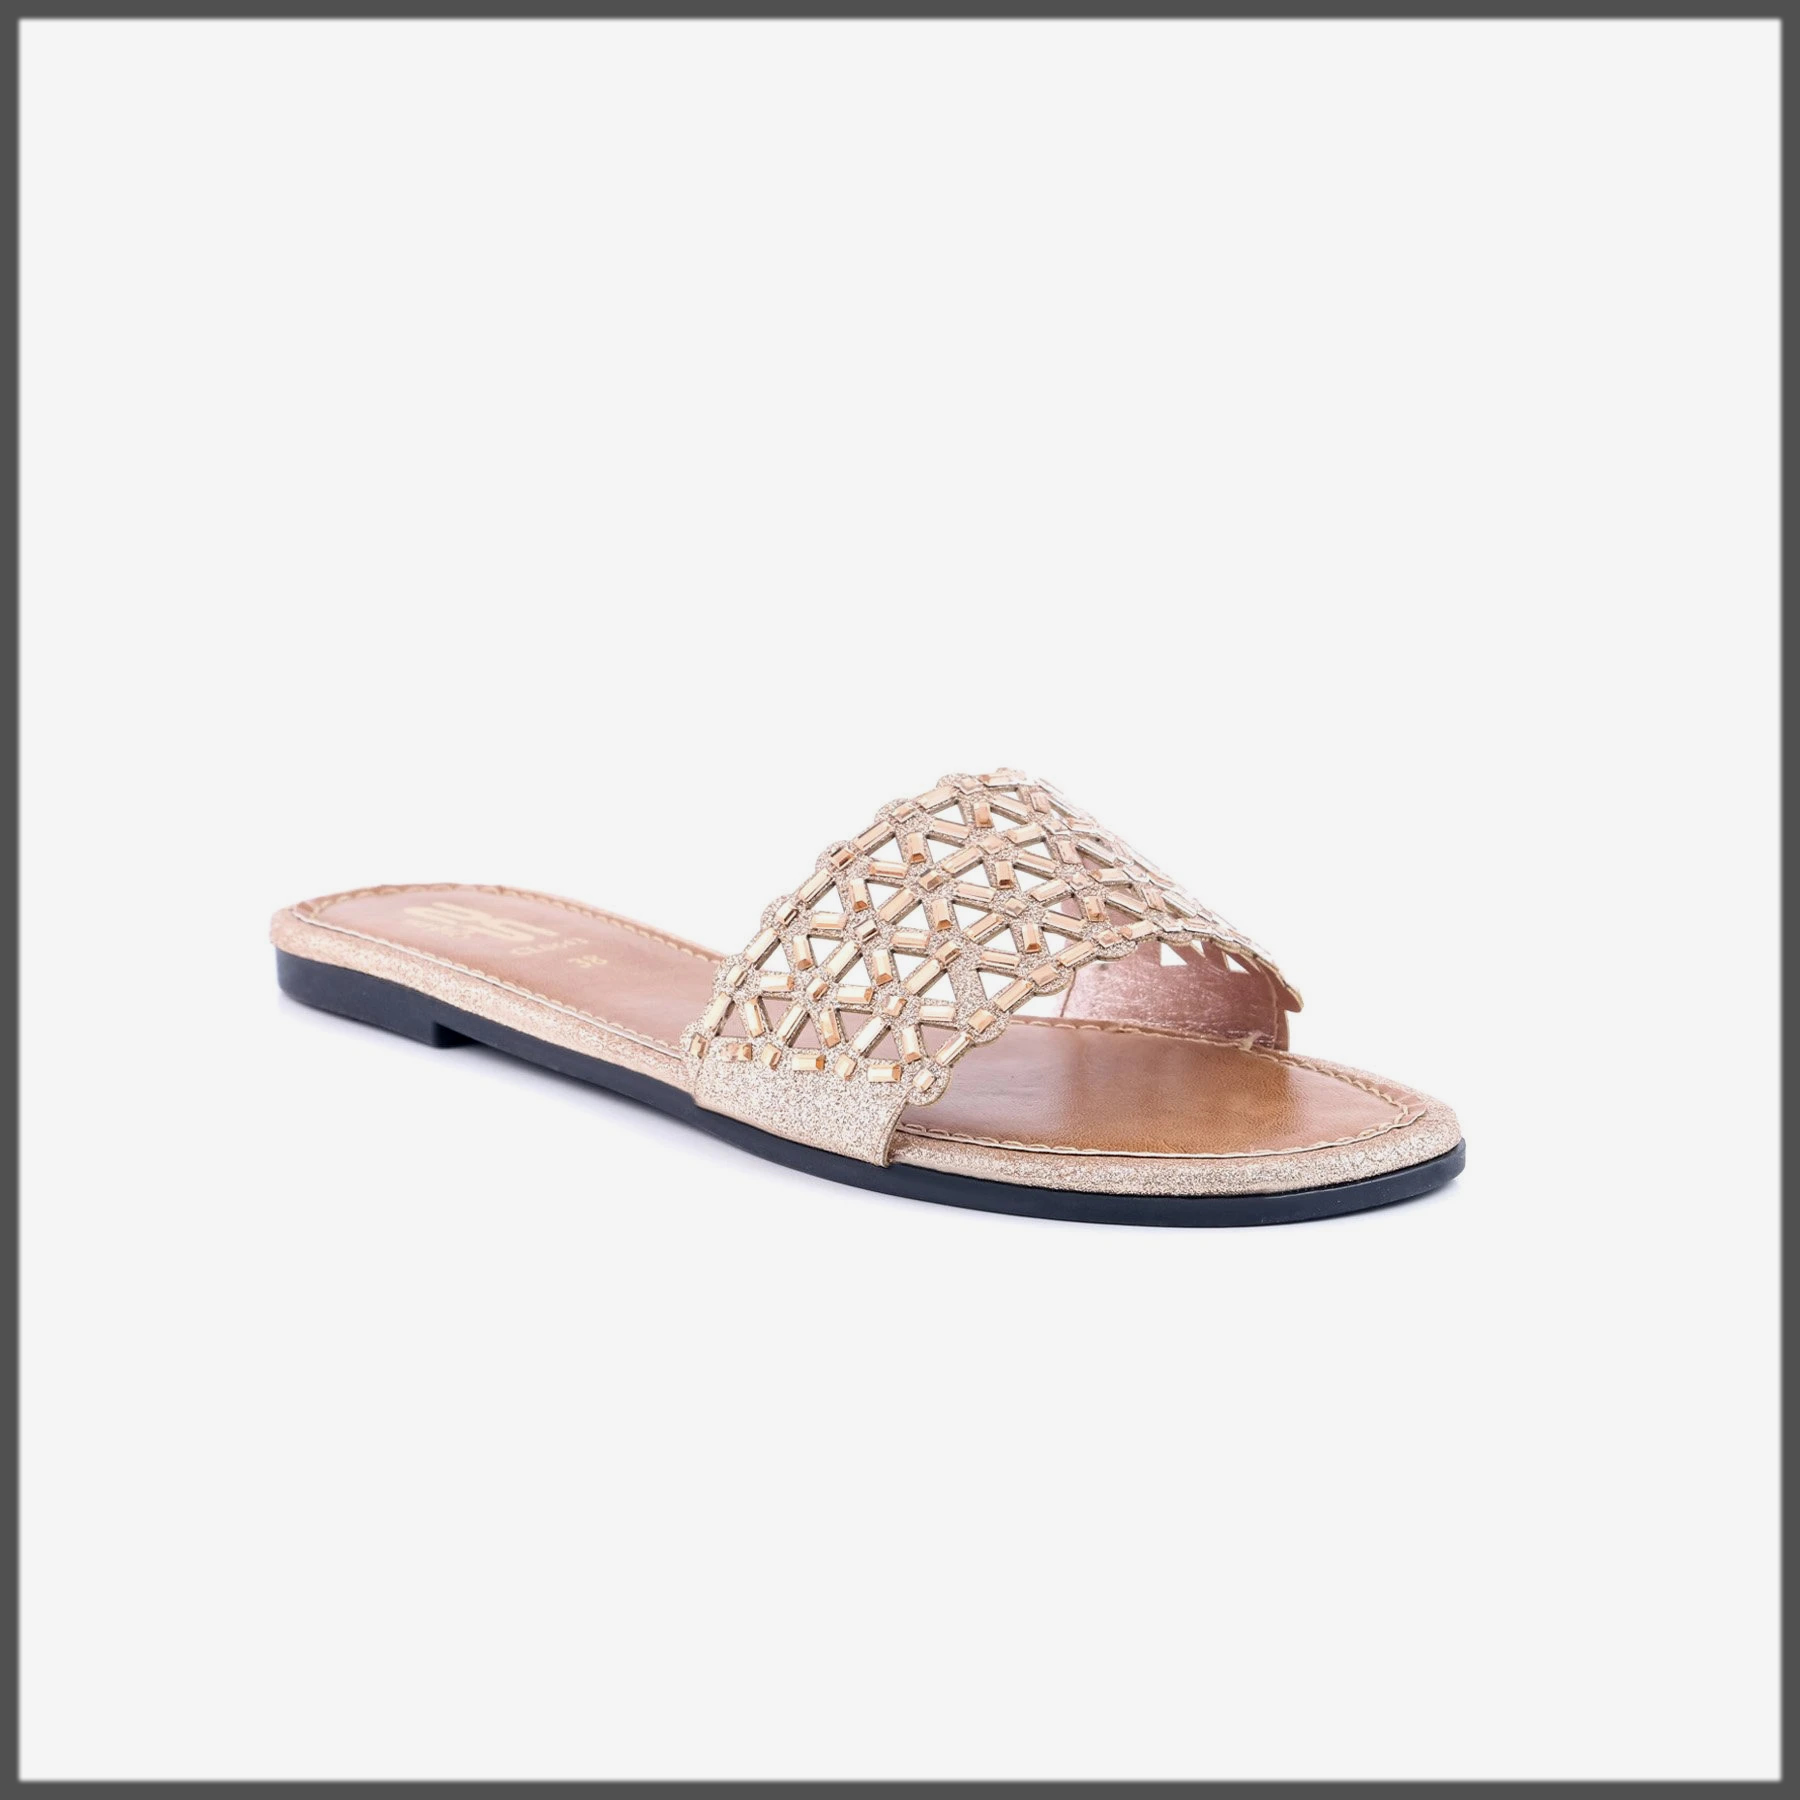 Fawn Color Casual Chappal for women